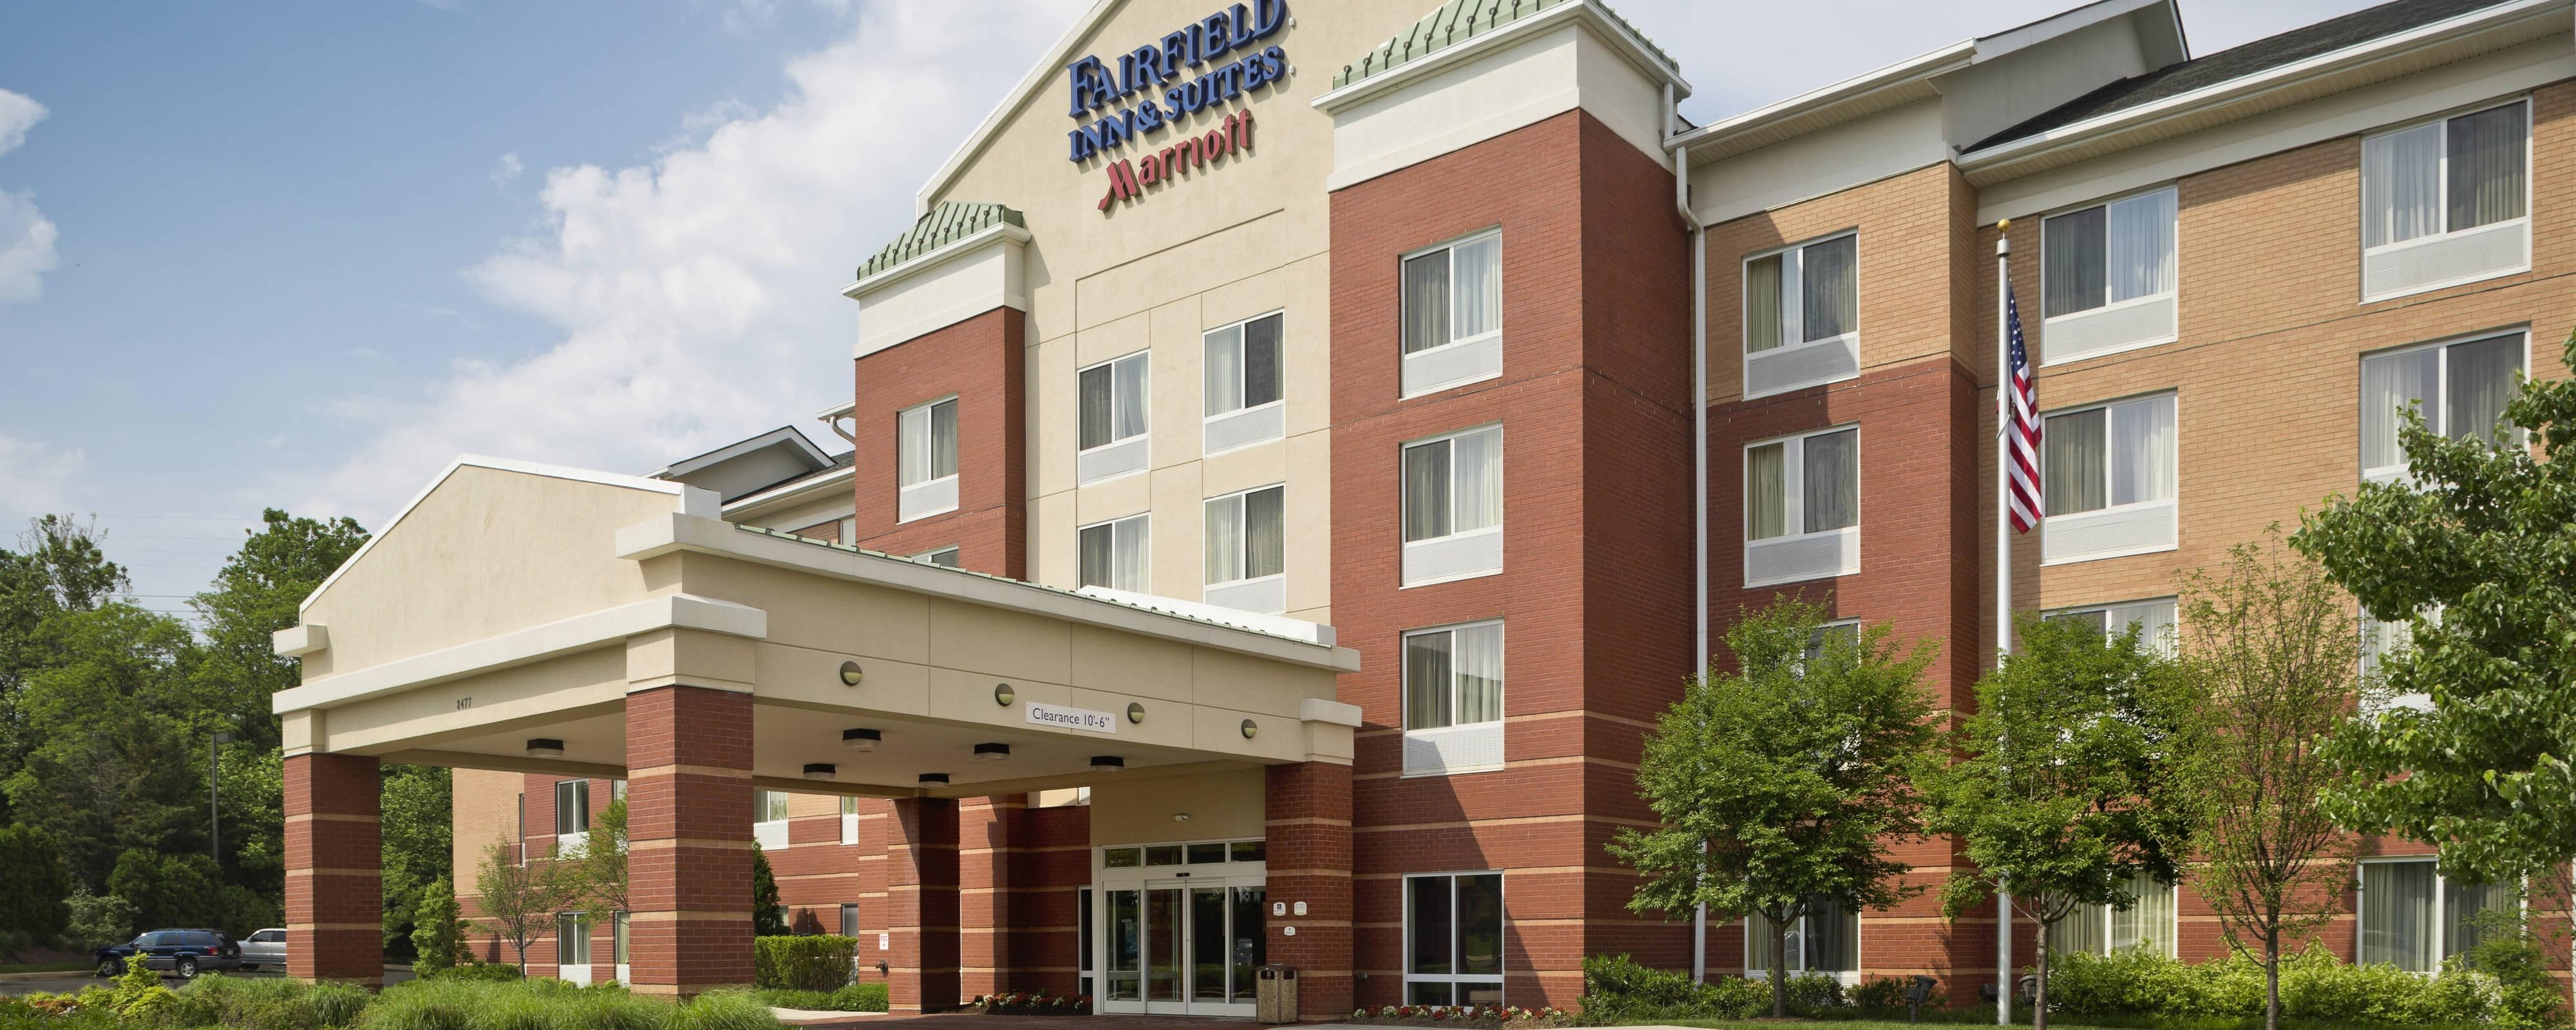 Außenansicht des Fairfield Inn & Suites White Marsh